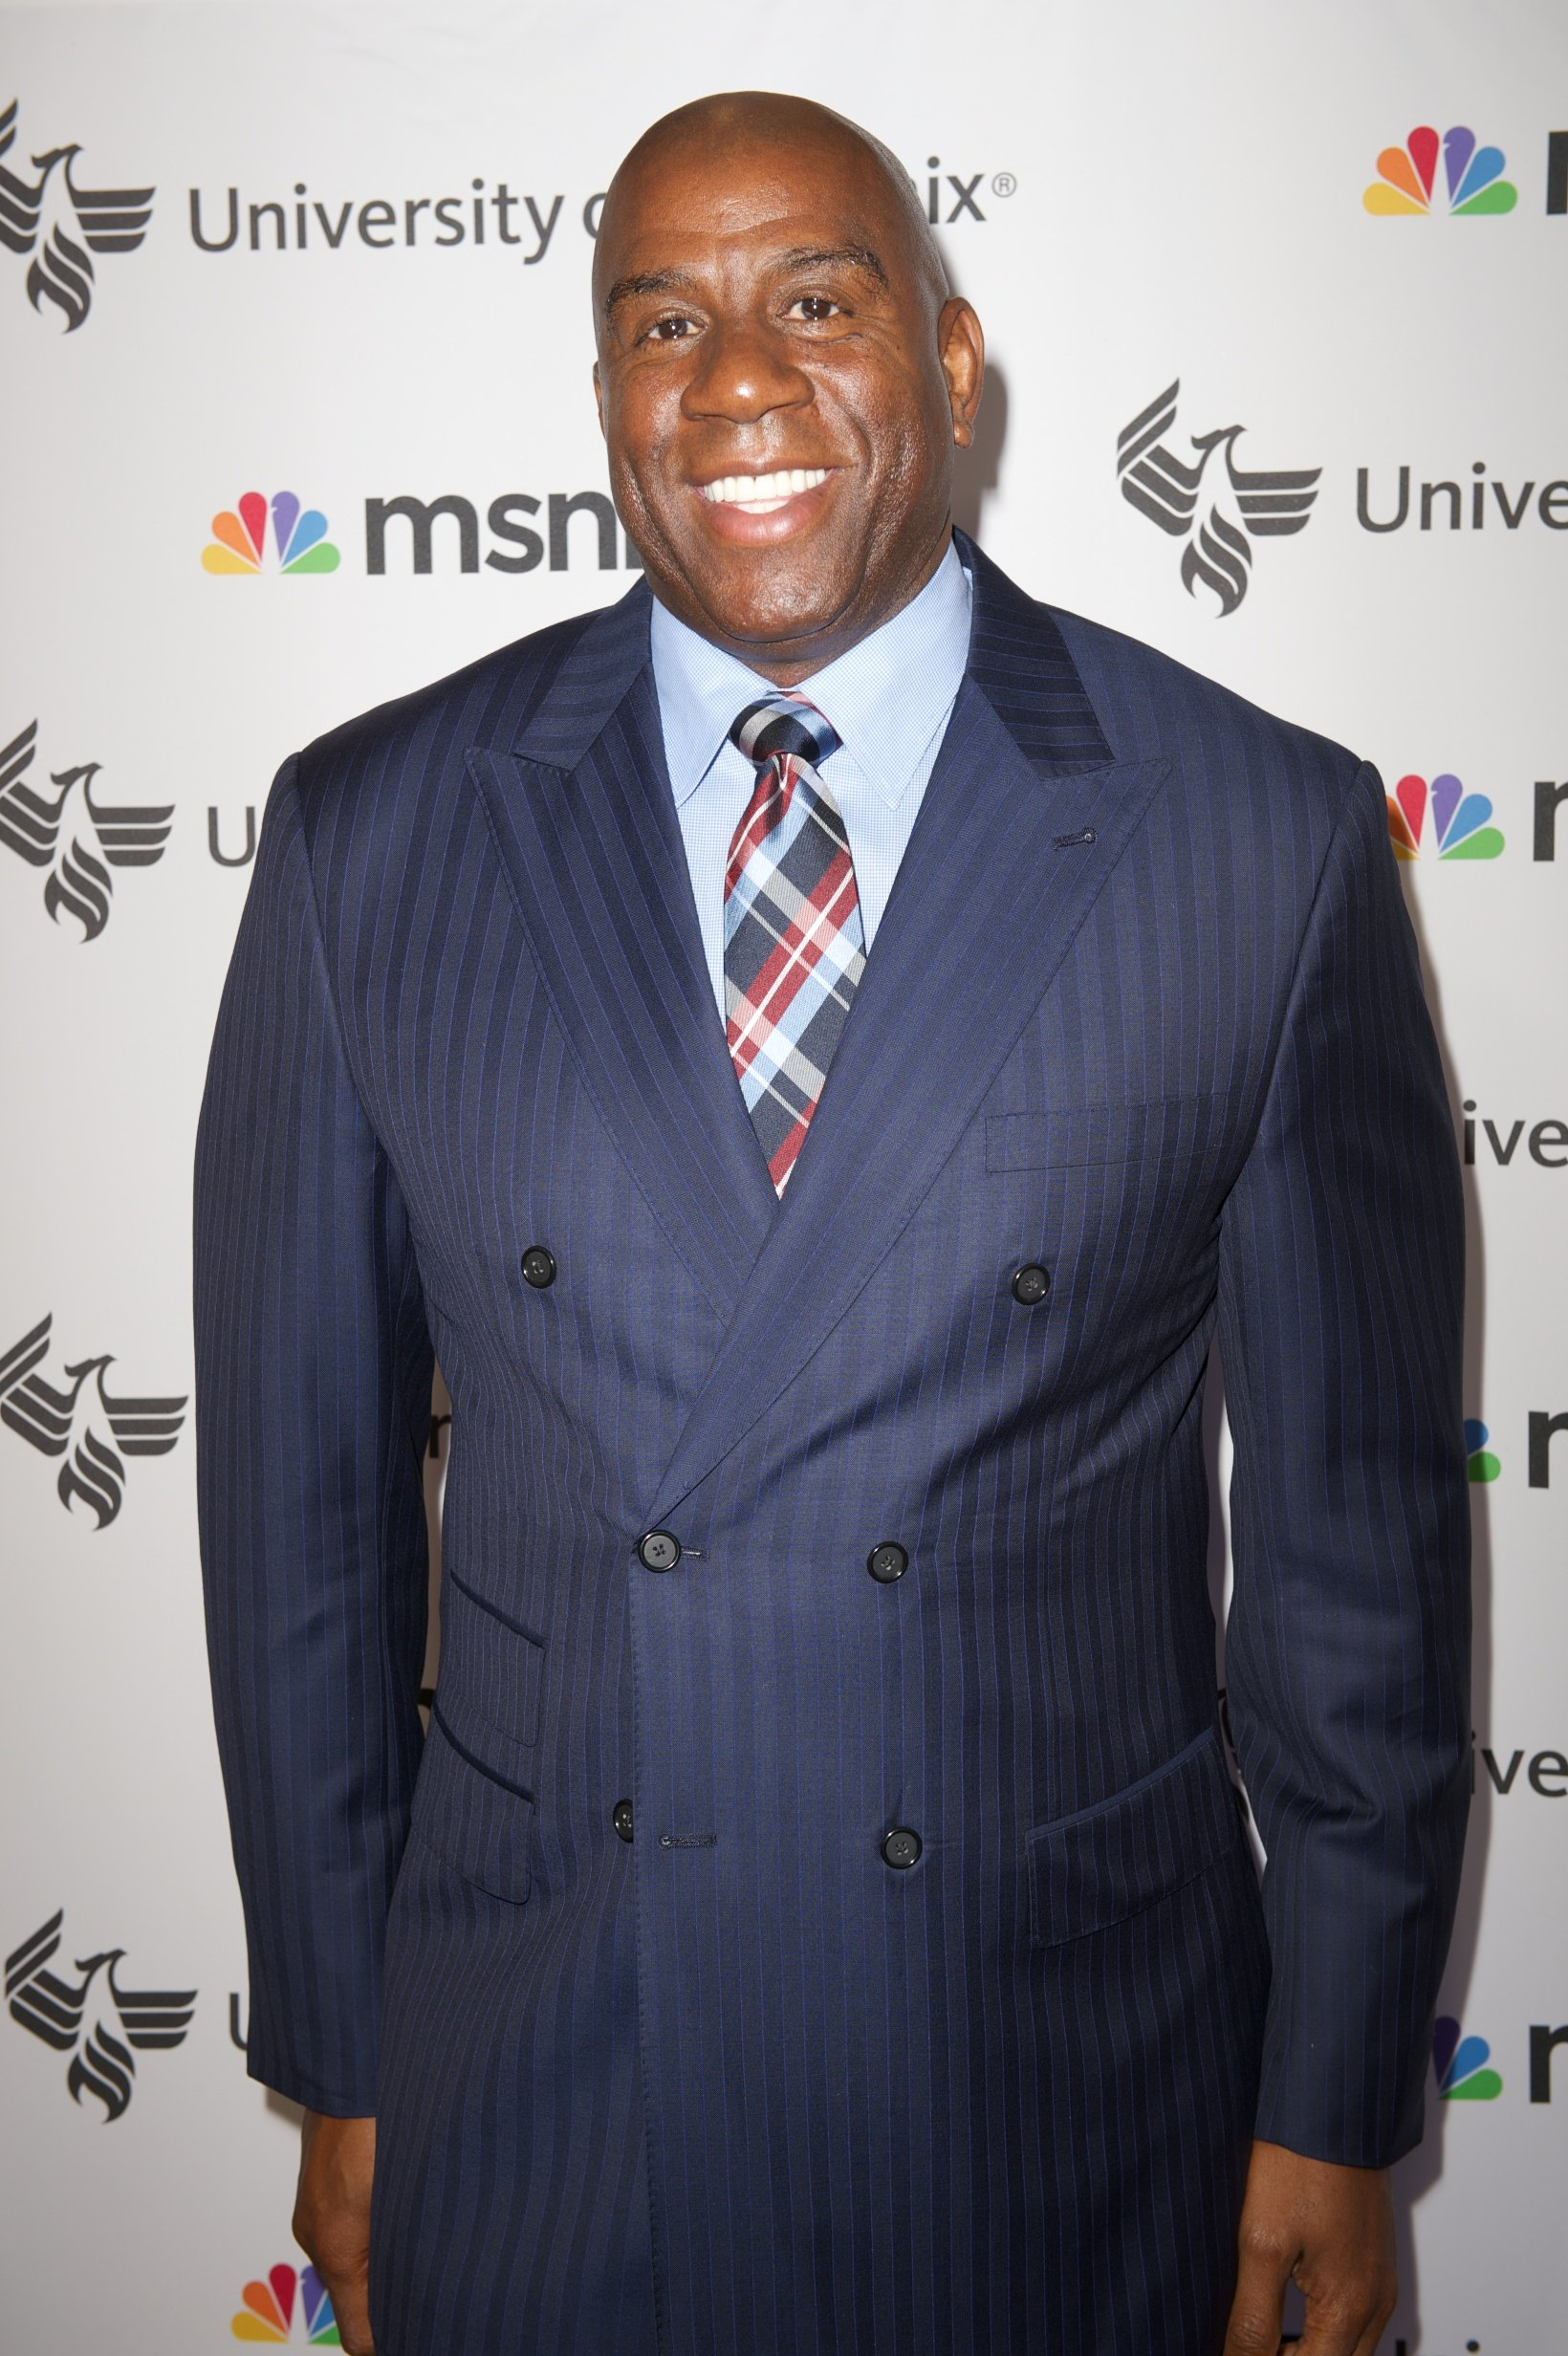 """Earvin Magic Johson attends """"Advancing The Dream: Live from the Apollo"""" event on September 6, 2013 in New York City 